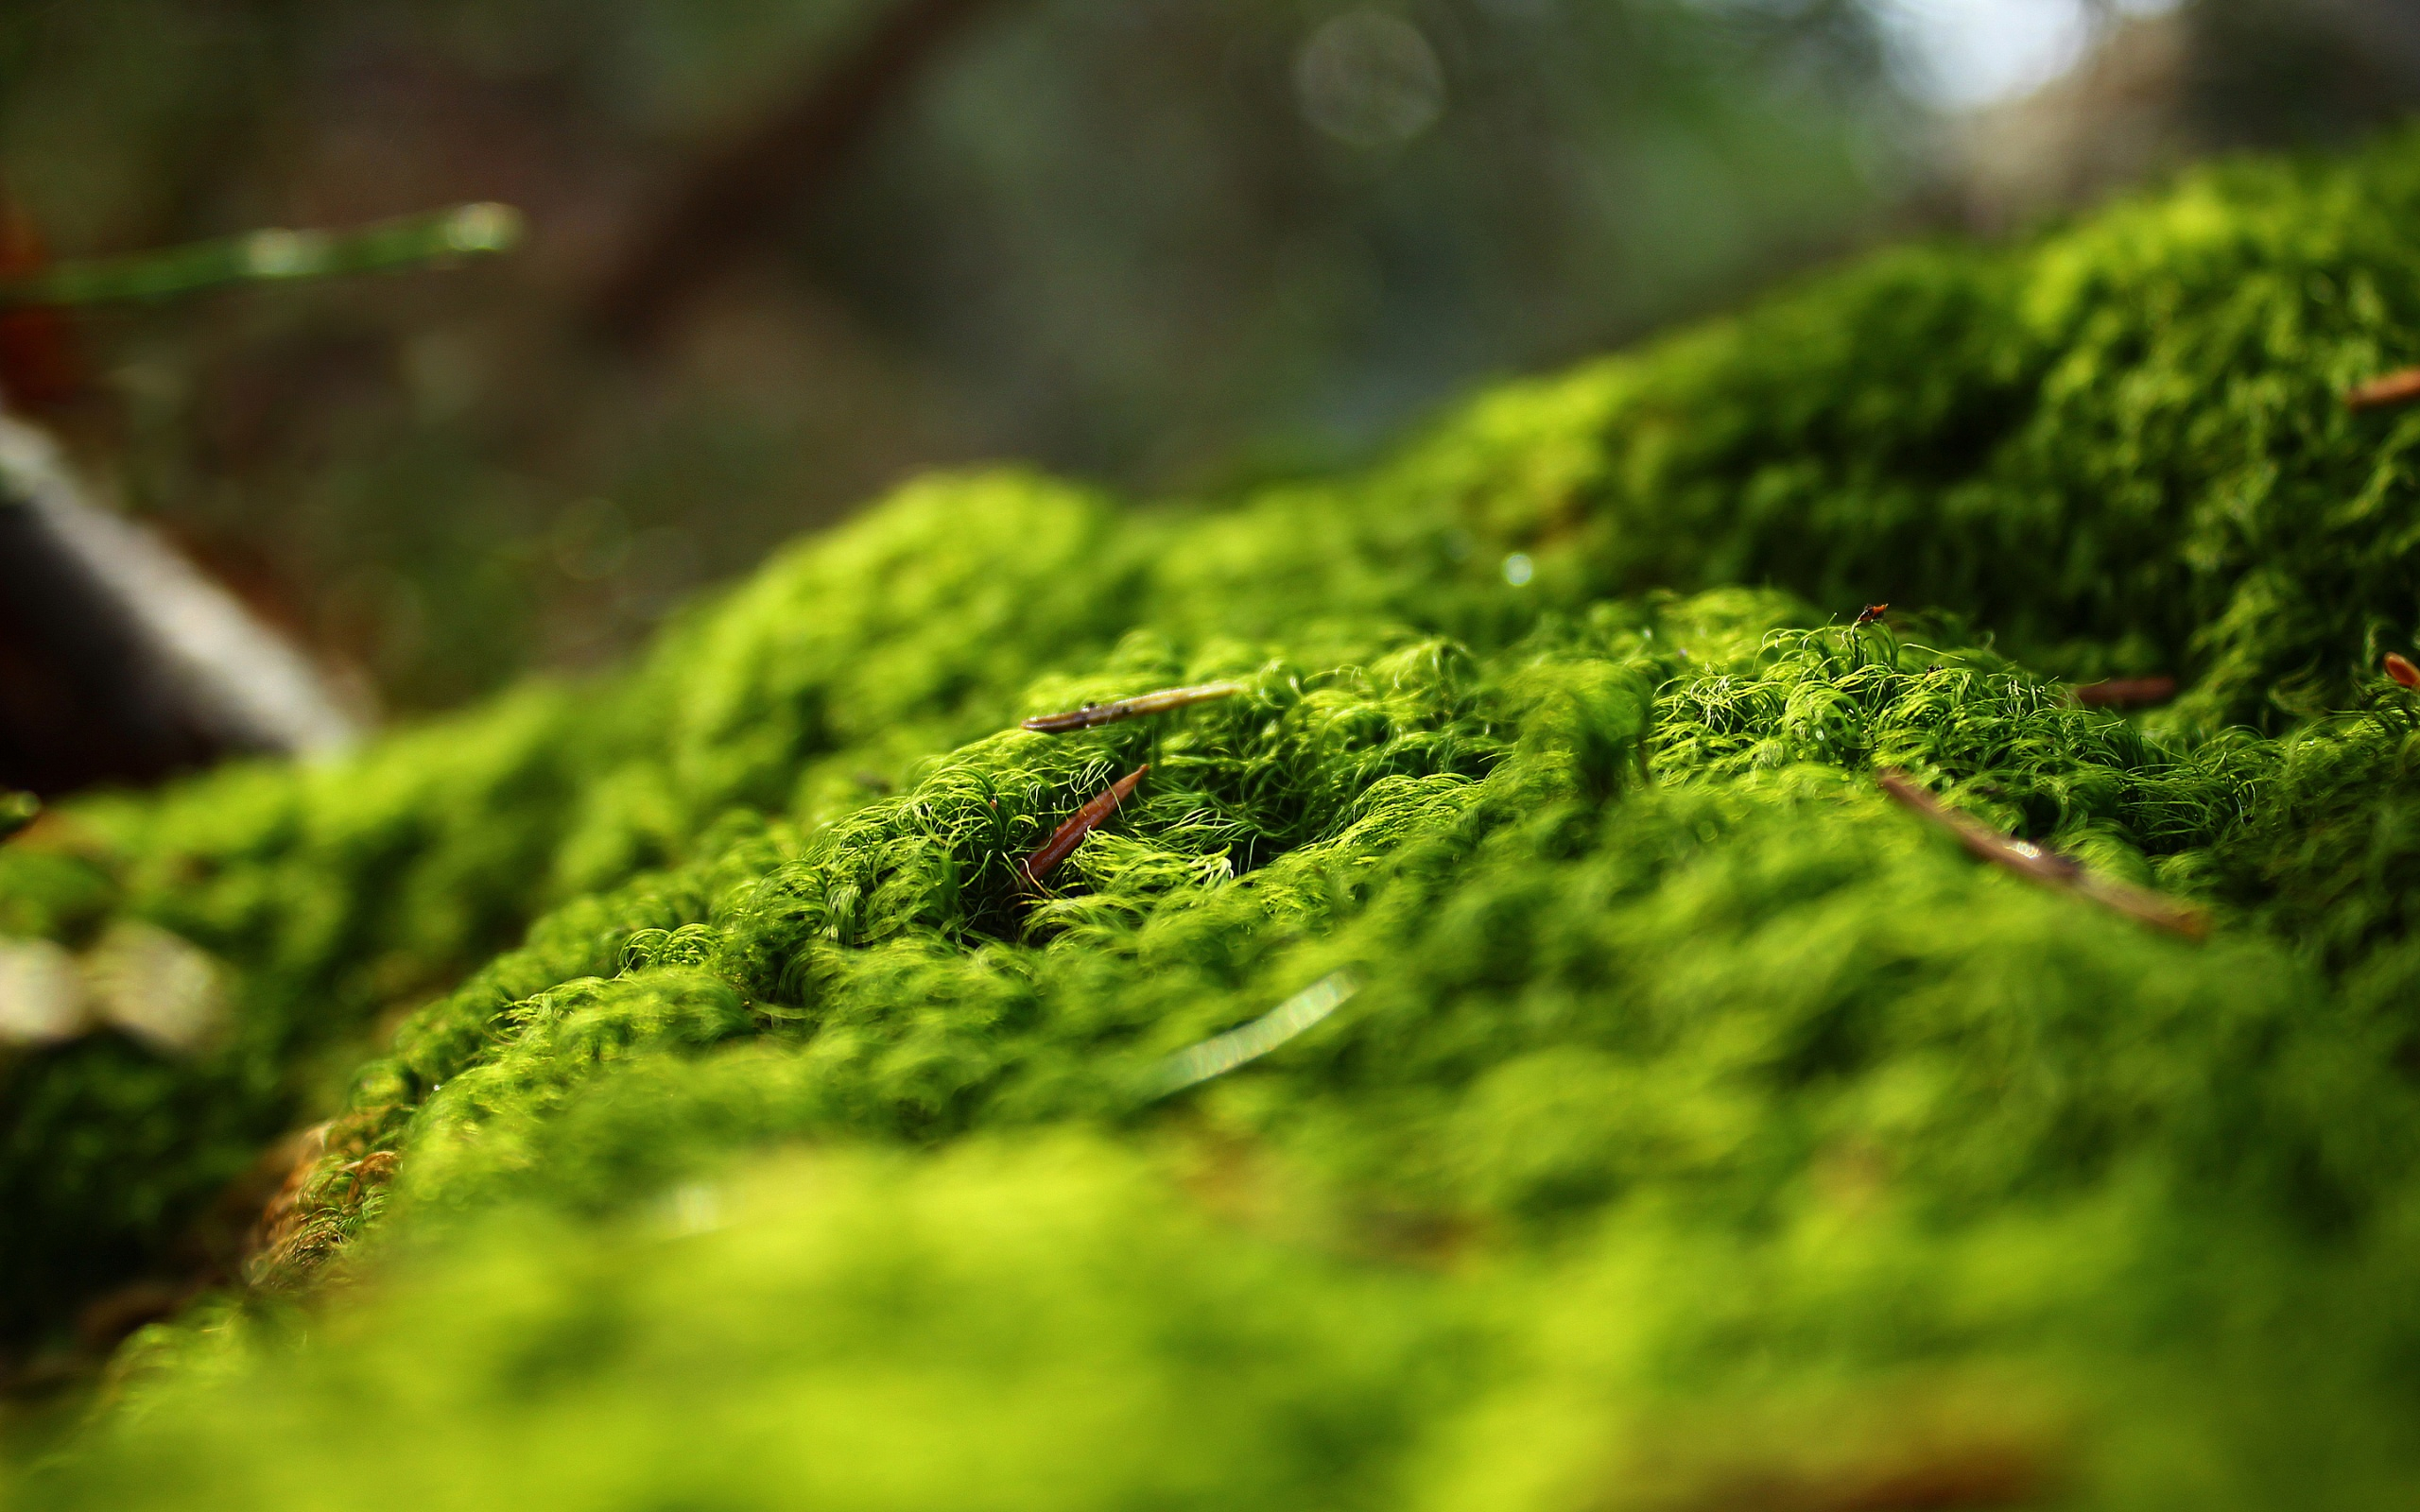 Views: 2824 Moss Wallpaper 22900